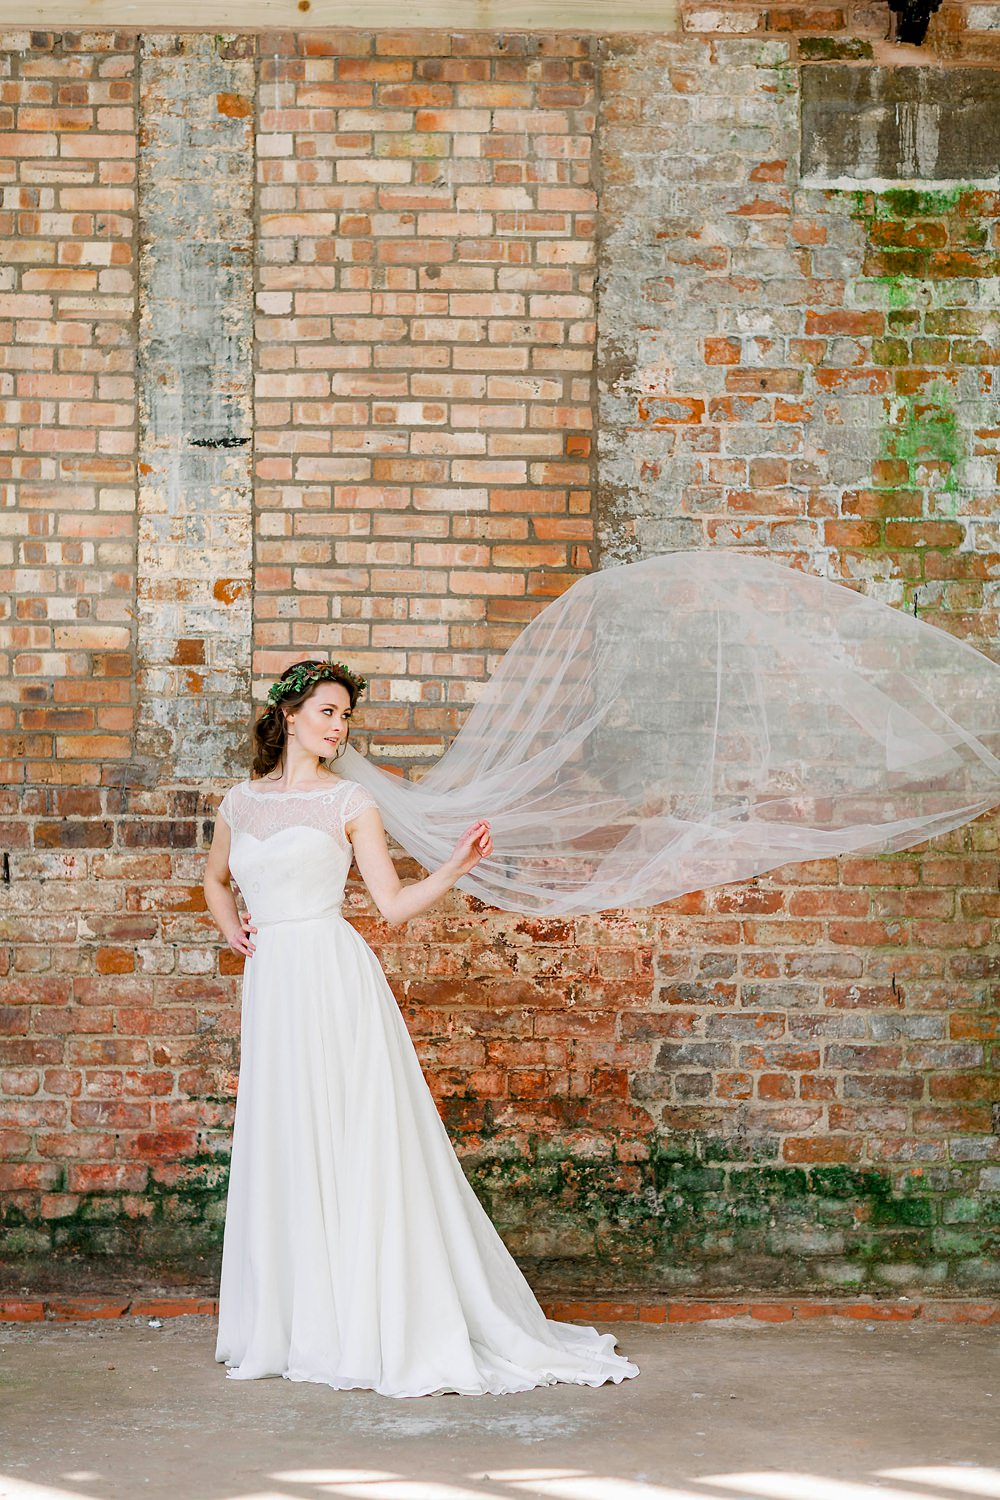 Bride Bridal Veil Natural Boho Industrial Wedding Ideas Jo Bradbury Photography